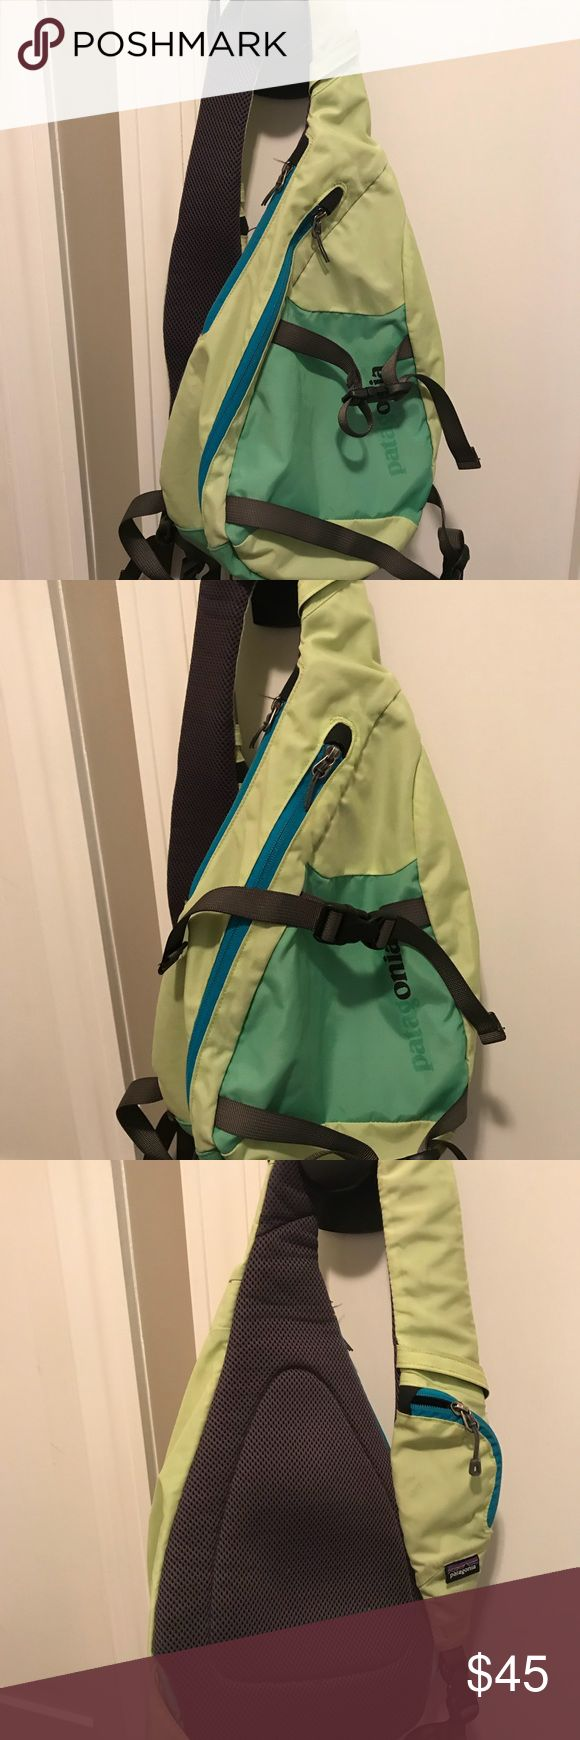 Patagonia sling bag 8 L Atom Great used bag with lots of life left in it! The the first 4 letters on the logo has peeled off and there are a few pen marks on the inside of the bag. The rest of the bag is in great shape with no tears, holes or stains. Patagonia Bags Crossbody Bags